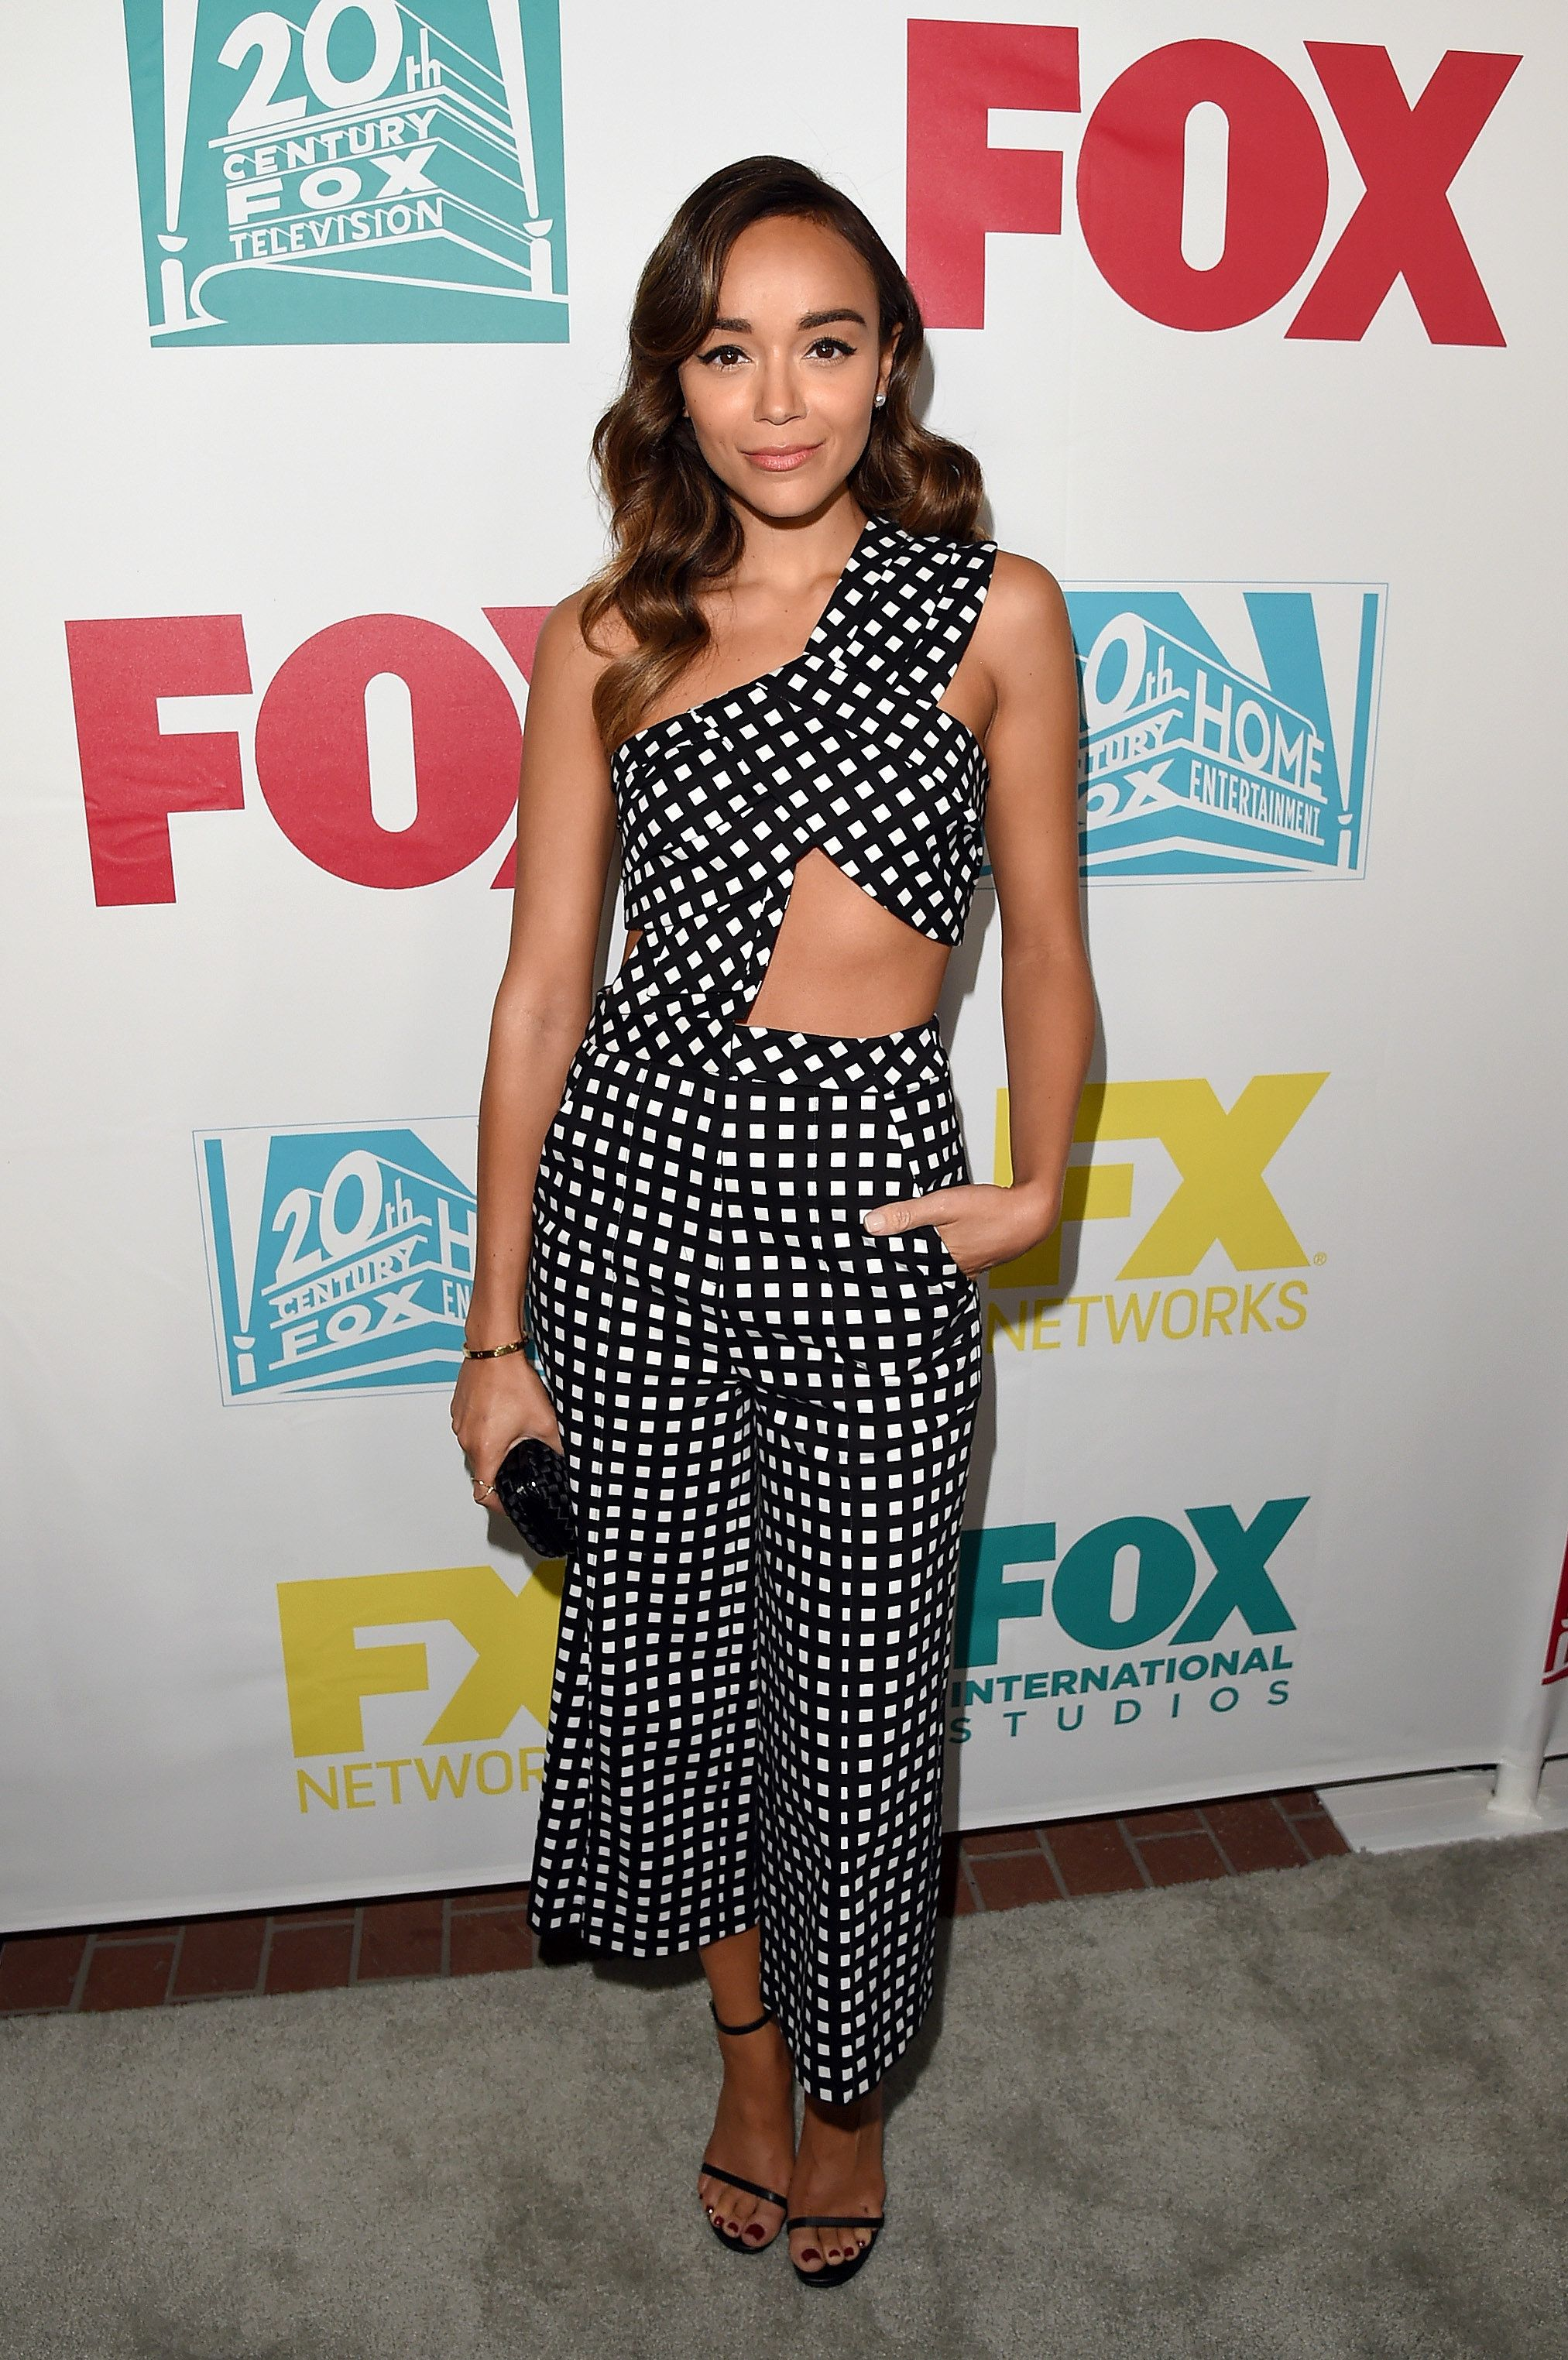 Celebrites Ashley Madekwe nudes (15 foto and video), Topless, Hot, Twitter, cleavage 2006